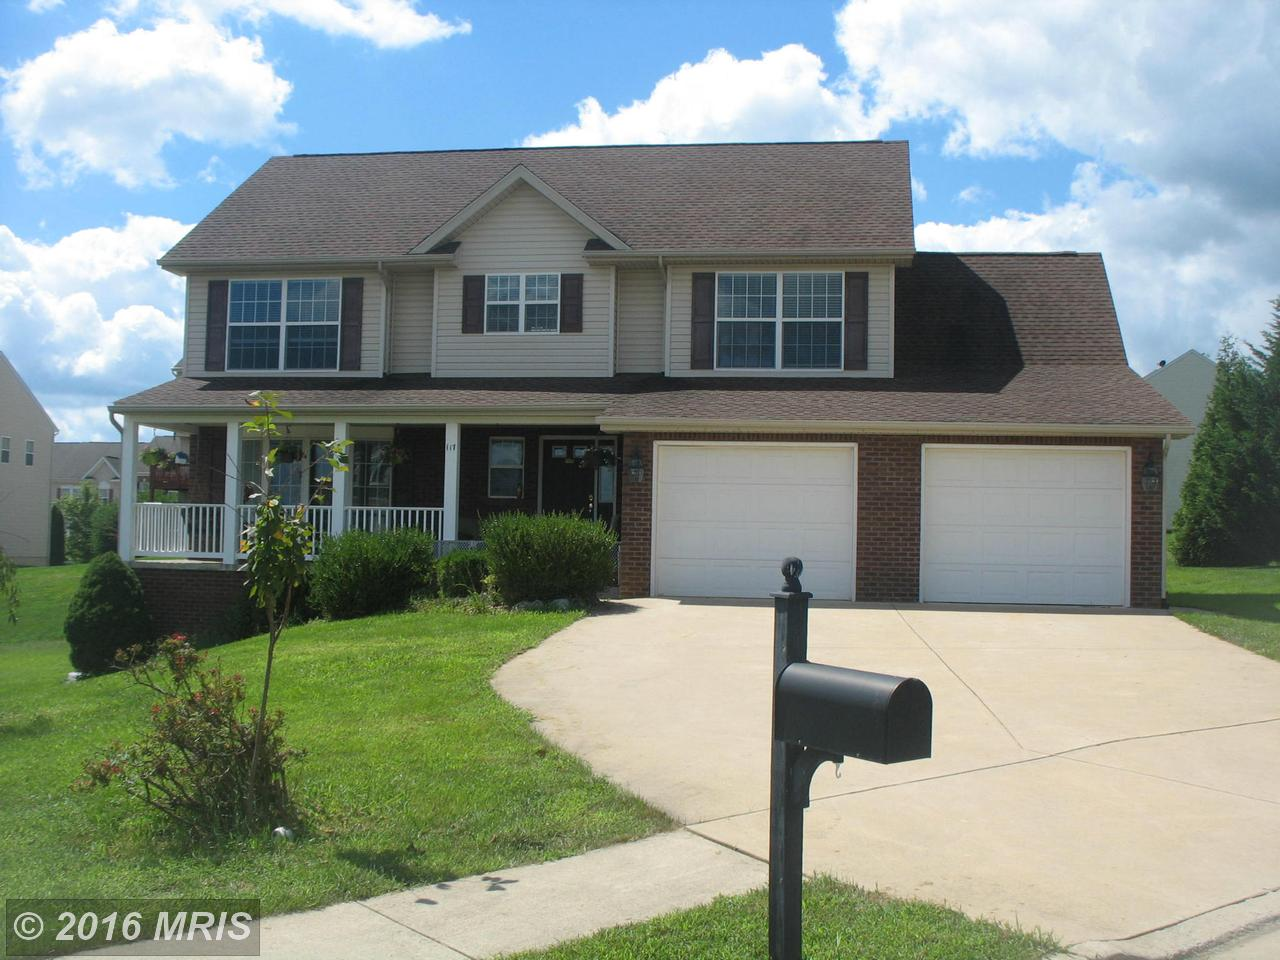 Homes For Sale In The The Gallery Subdivision